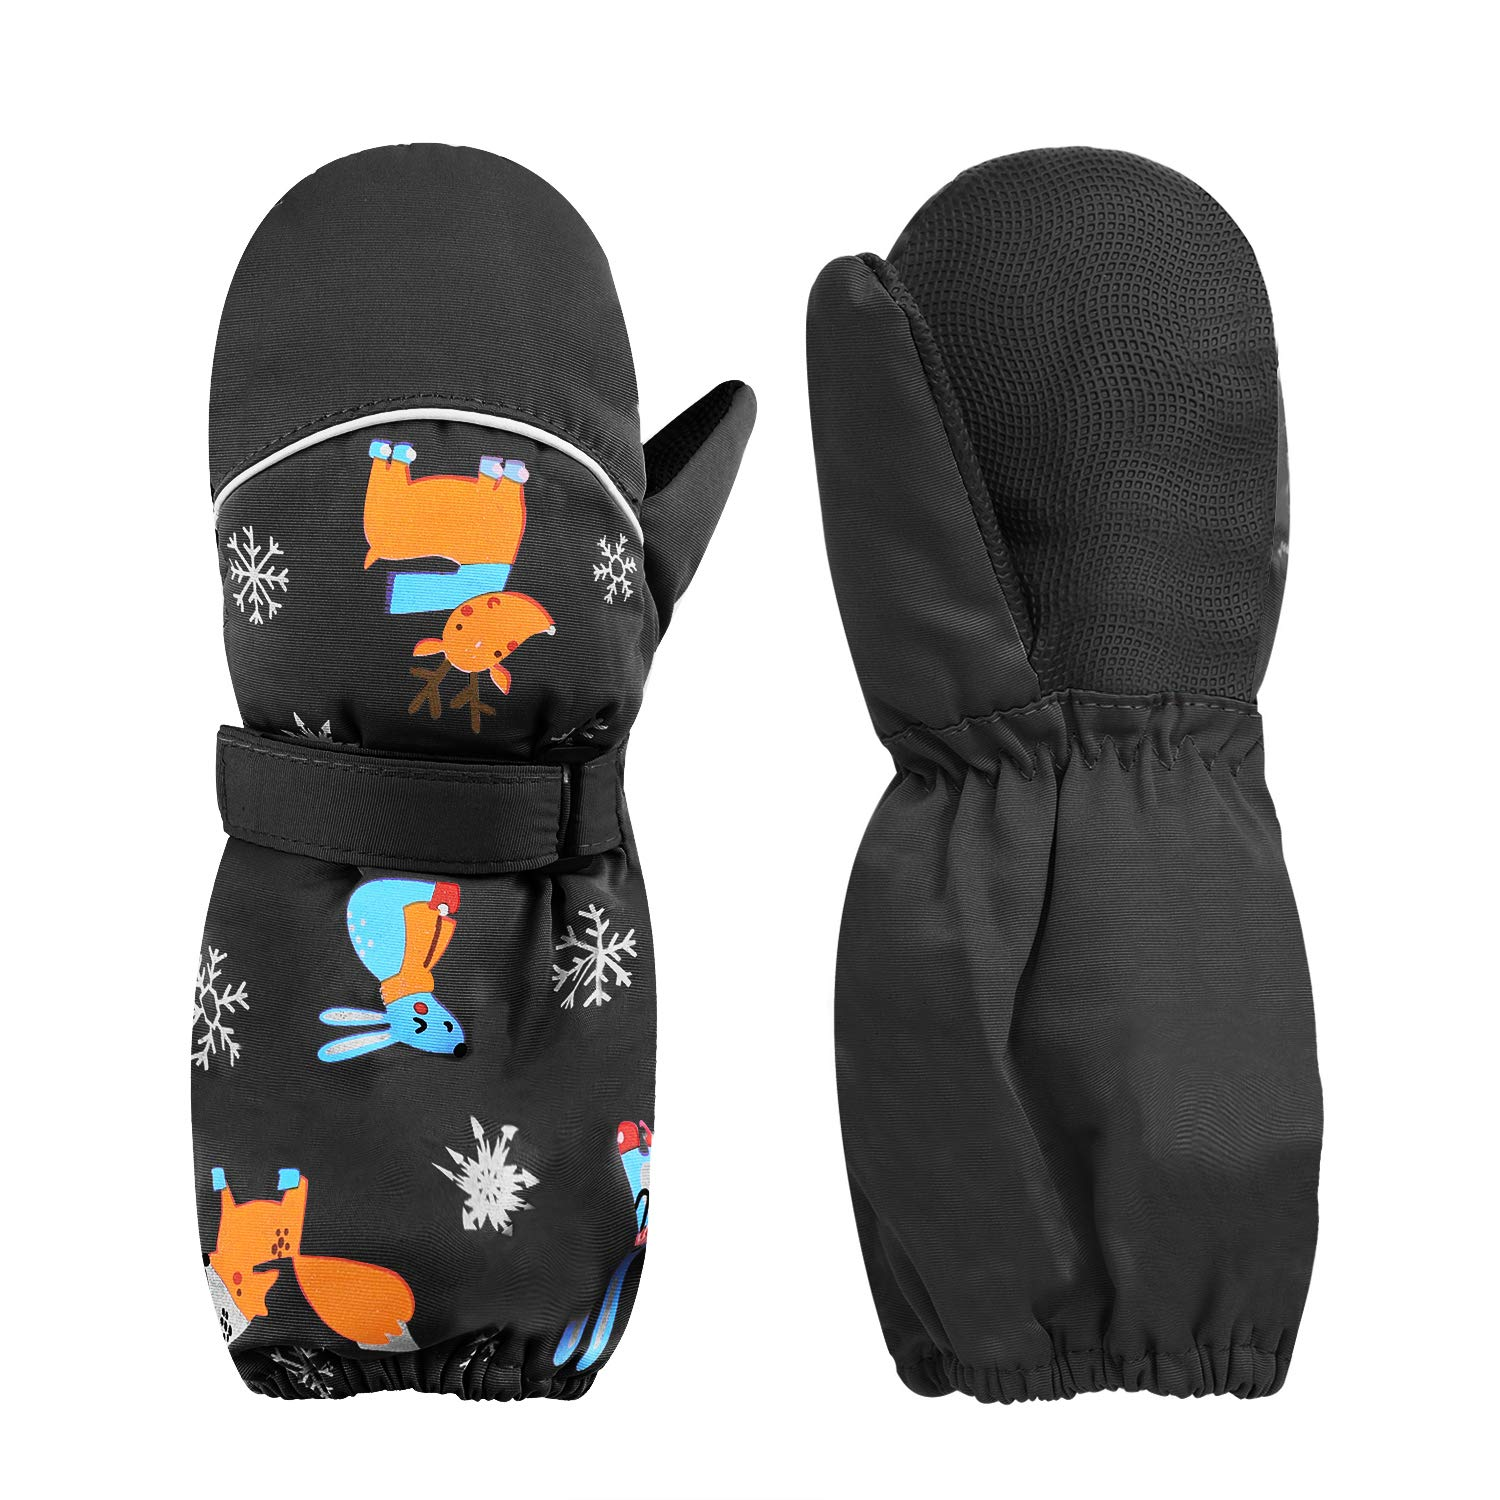 Kids Insulated Ski Gloves Waterproof /& Windproof Winter Ski Snow Glove Knitted Cuff Gloves for Age 1-3 Years Boys Girls